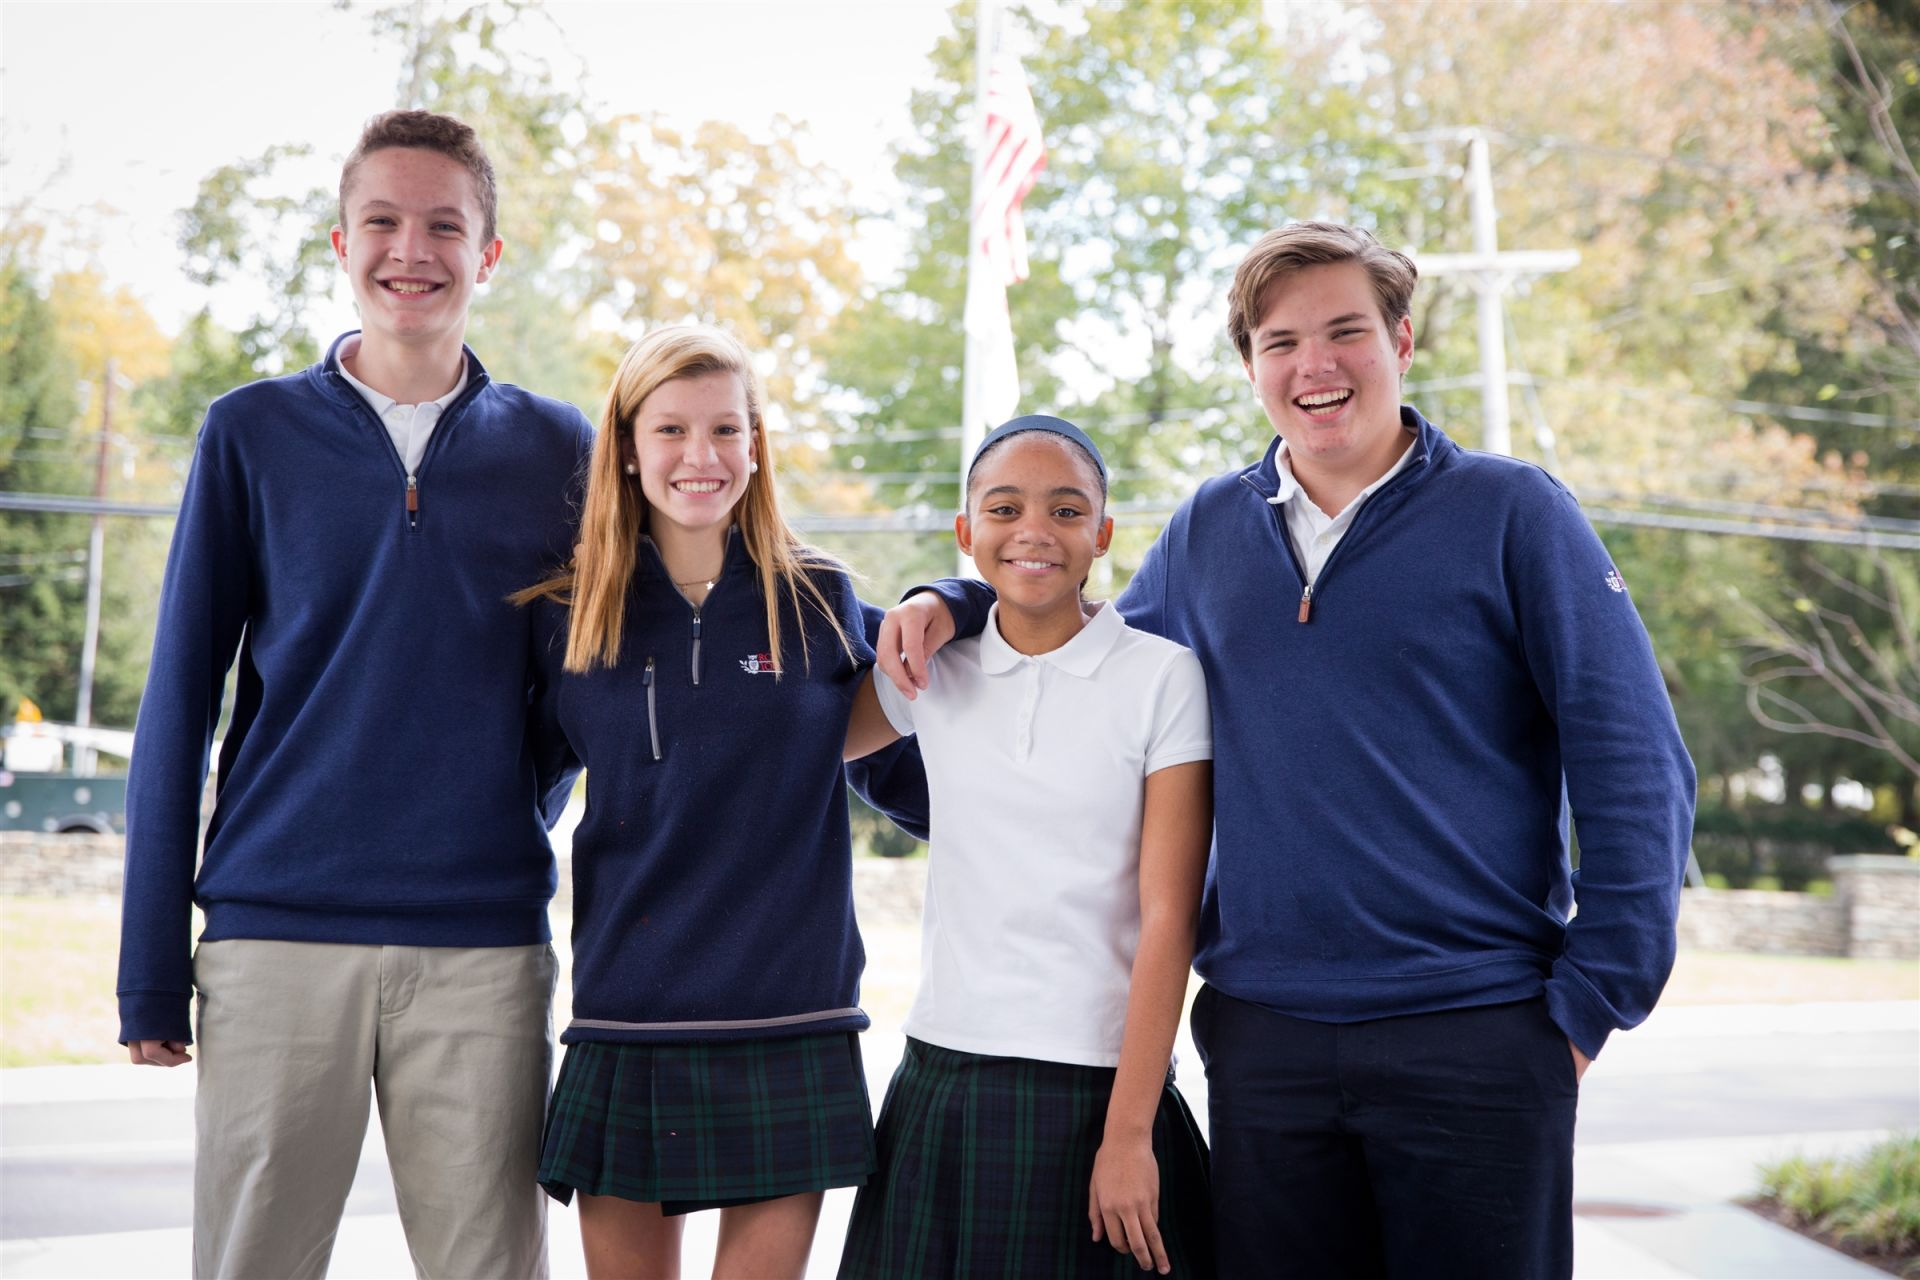 Peer-elected student leadership positions include Class President, Class Secretary, and Class Treasurer as well as Red and Blue Team Captains.